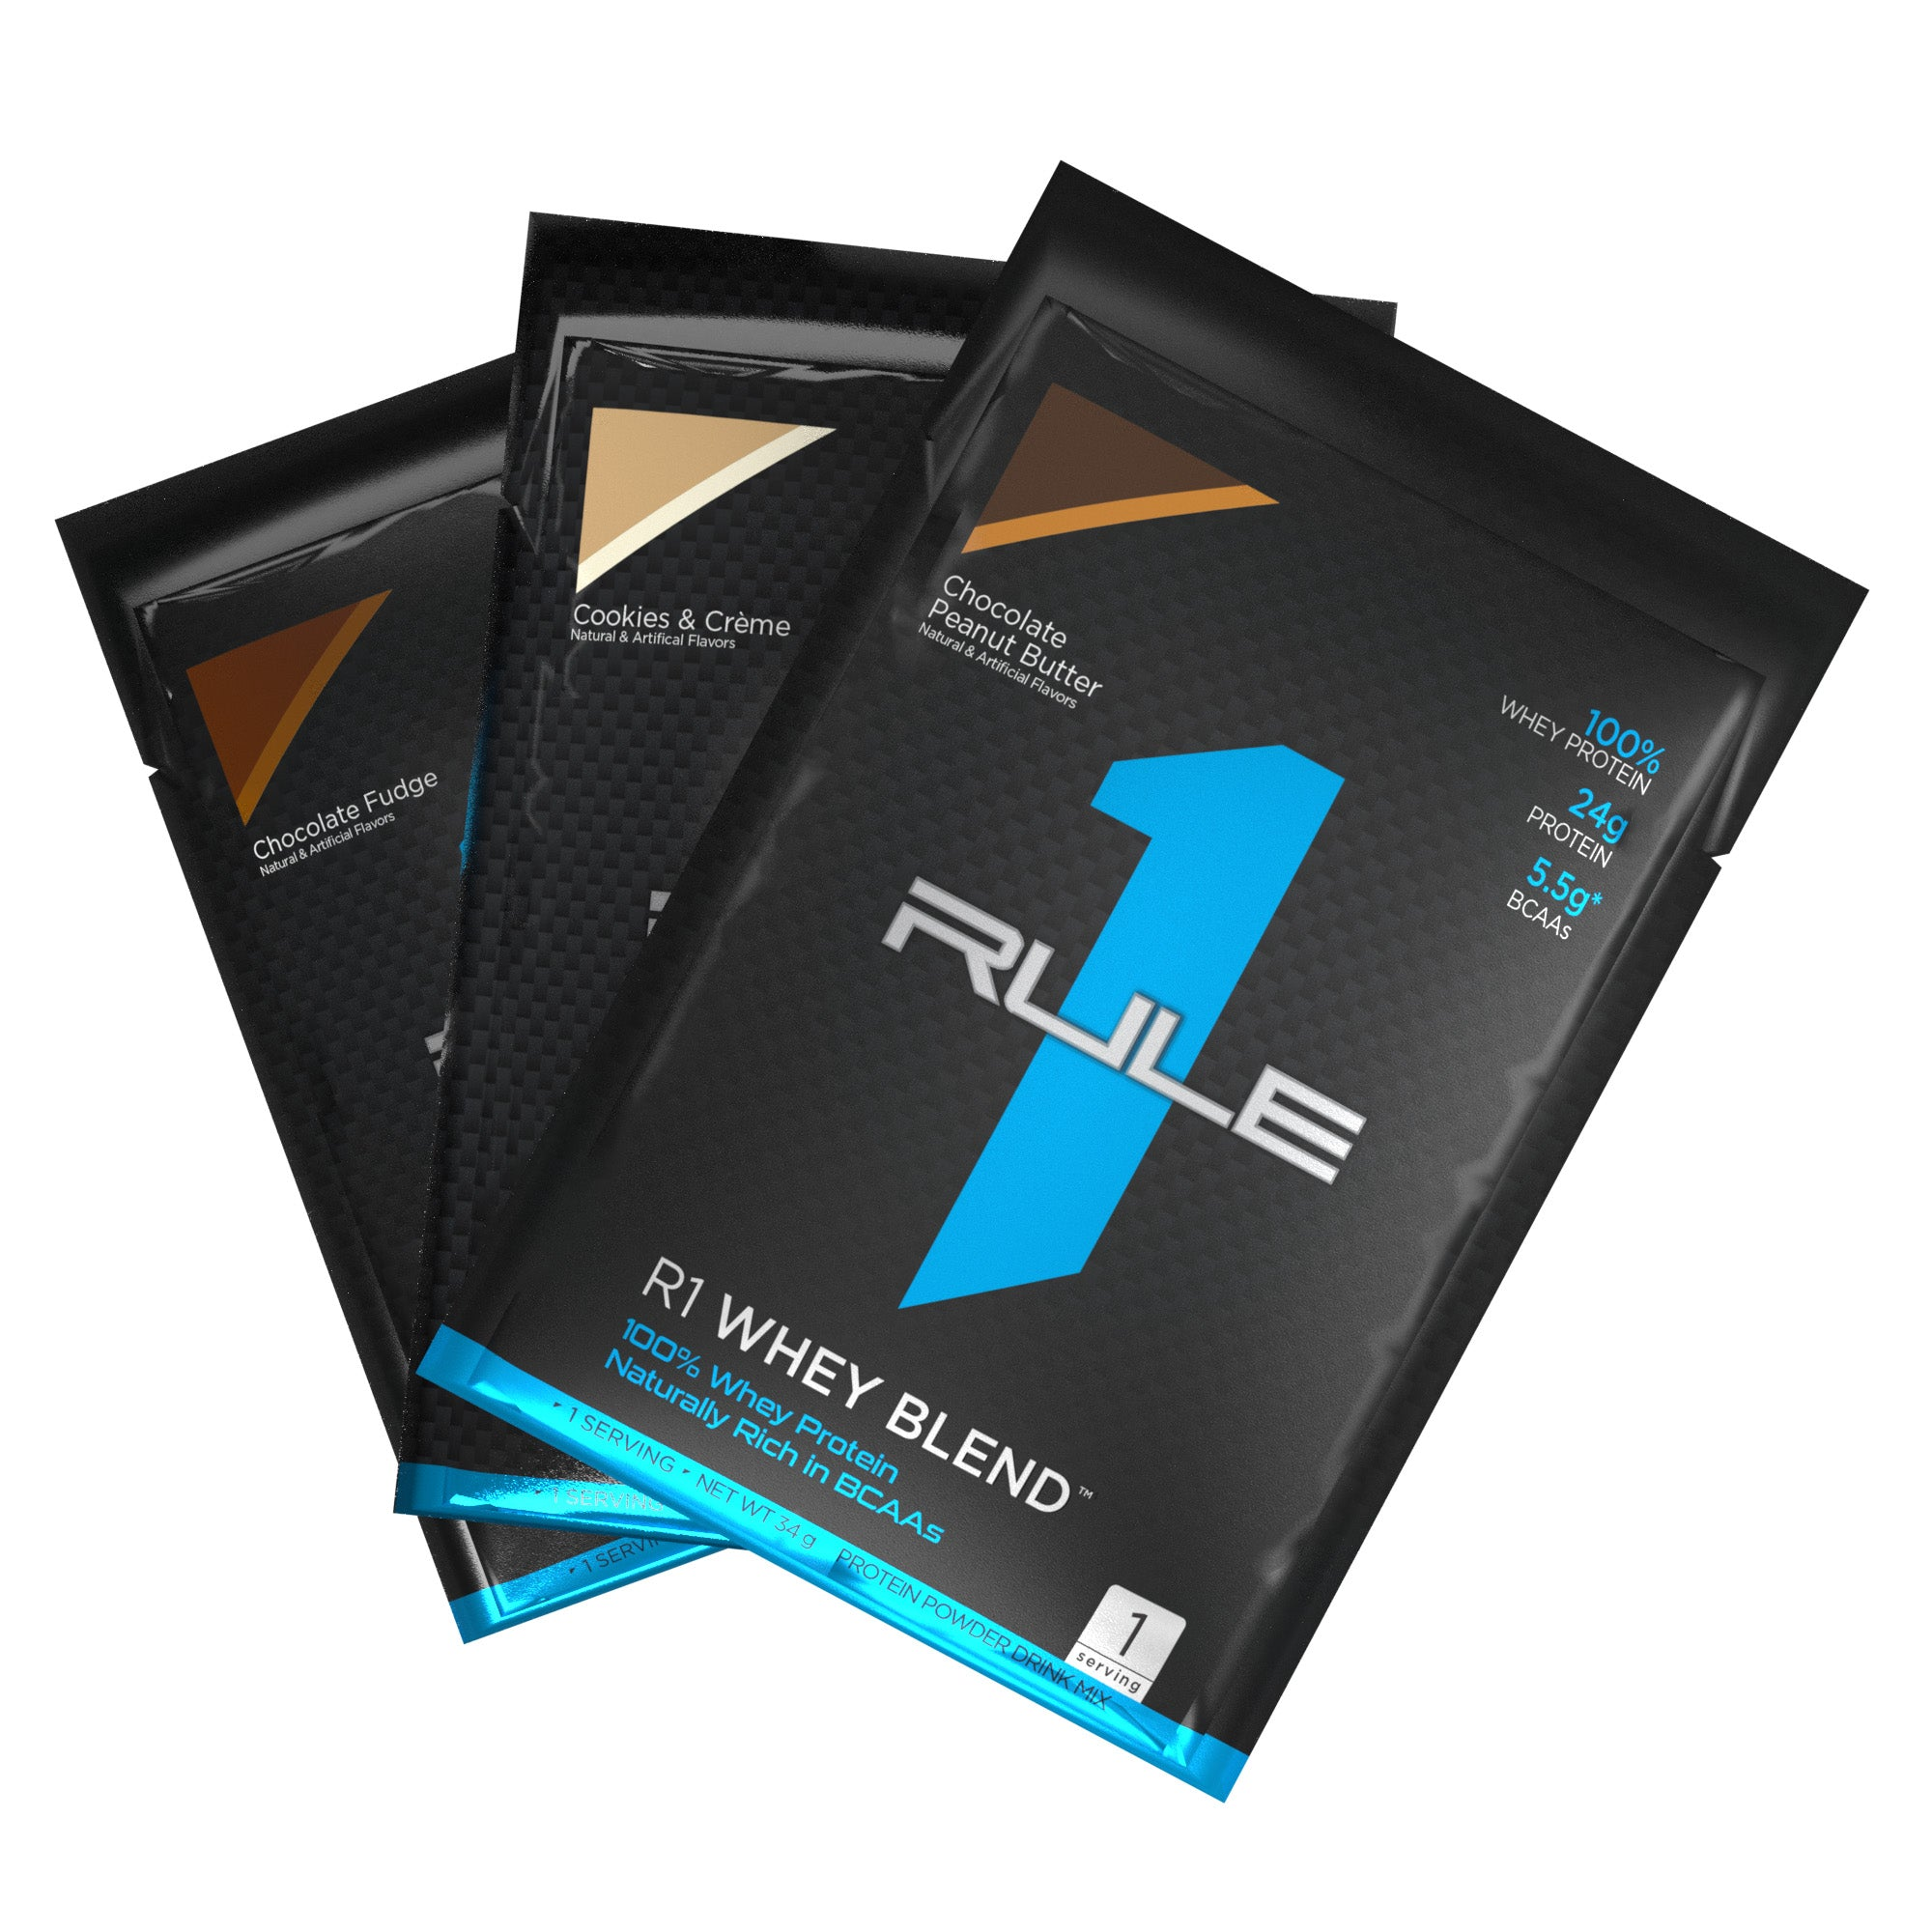 R1 Whey Blend Sample Stack